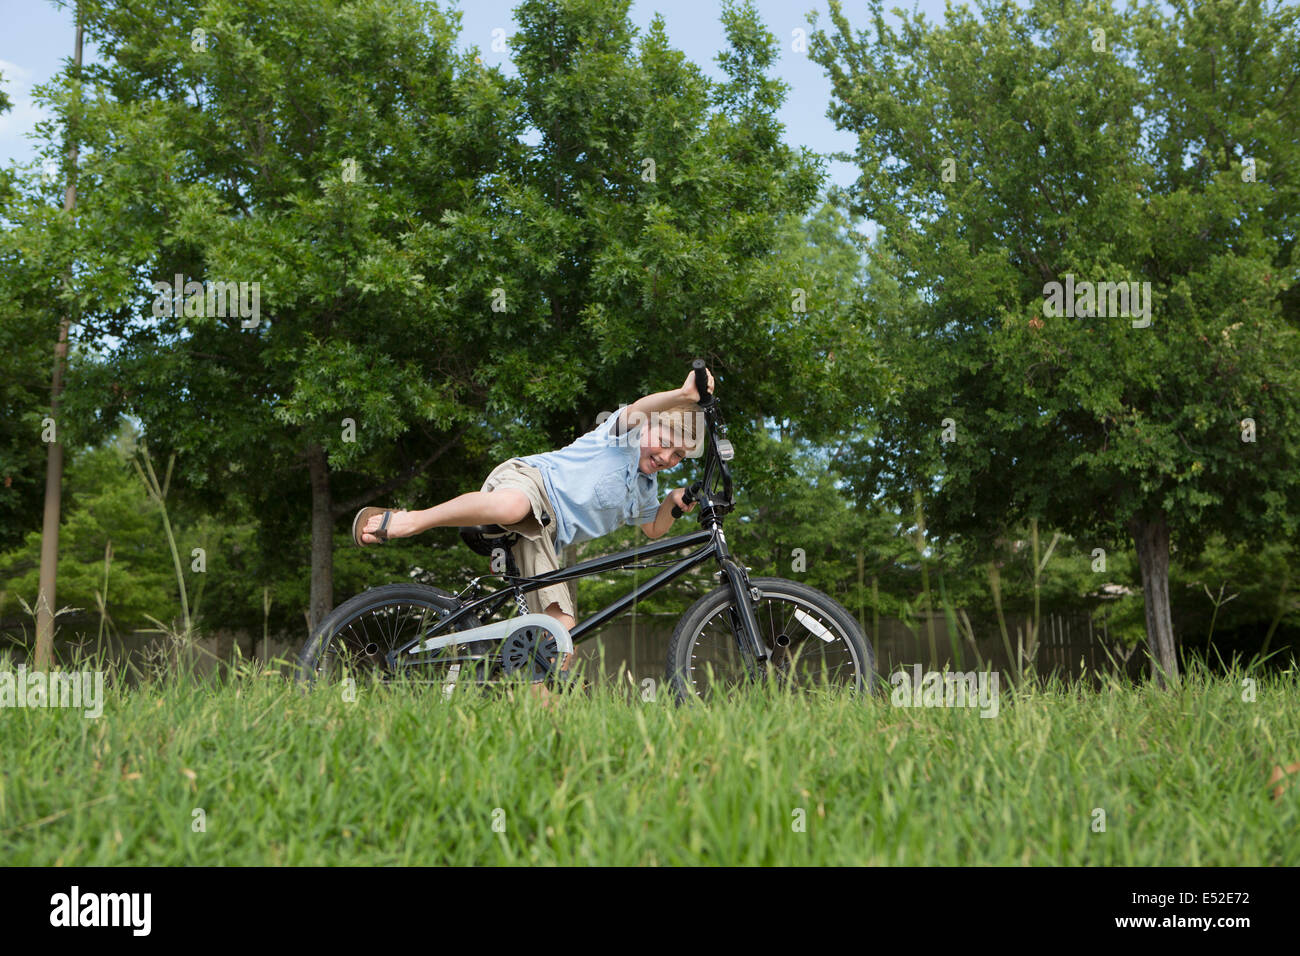 A young boy falling off his bicycle, overbalancing in a grassy field. - Stock Image